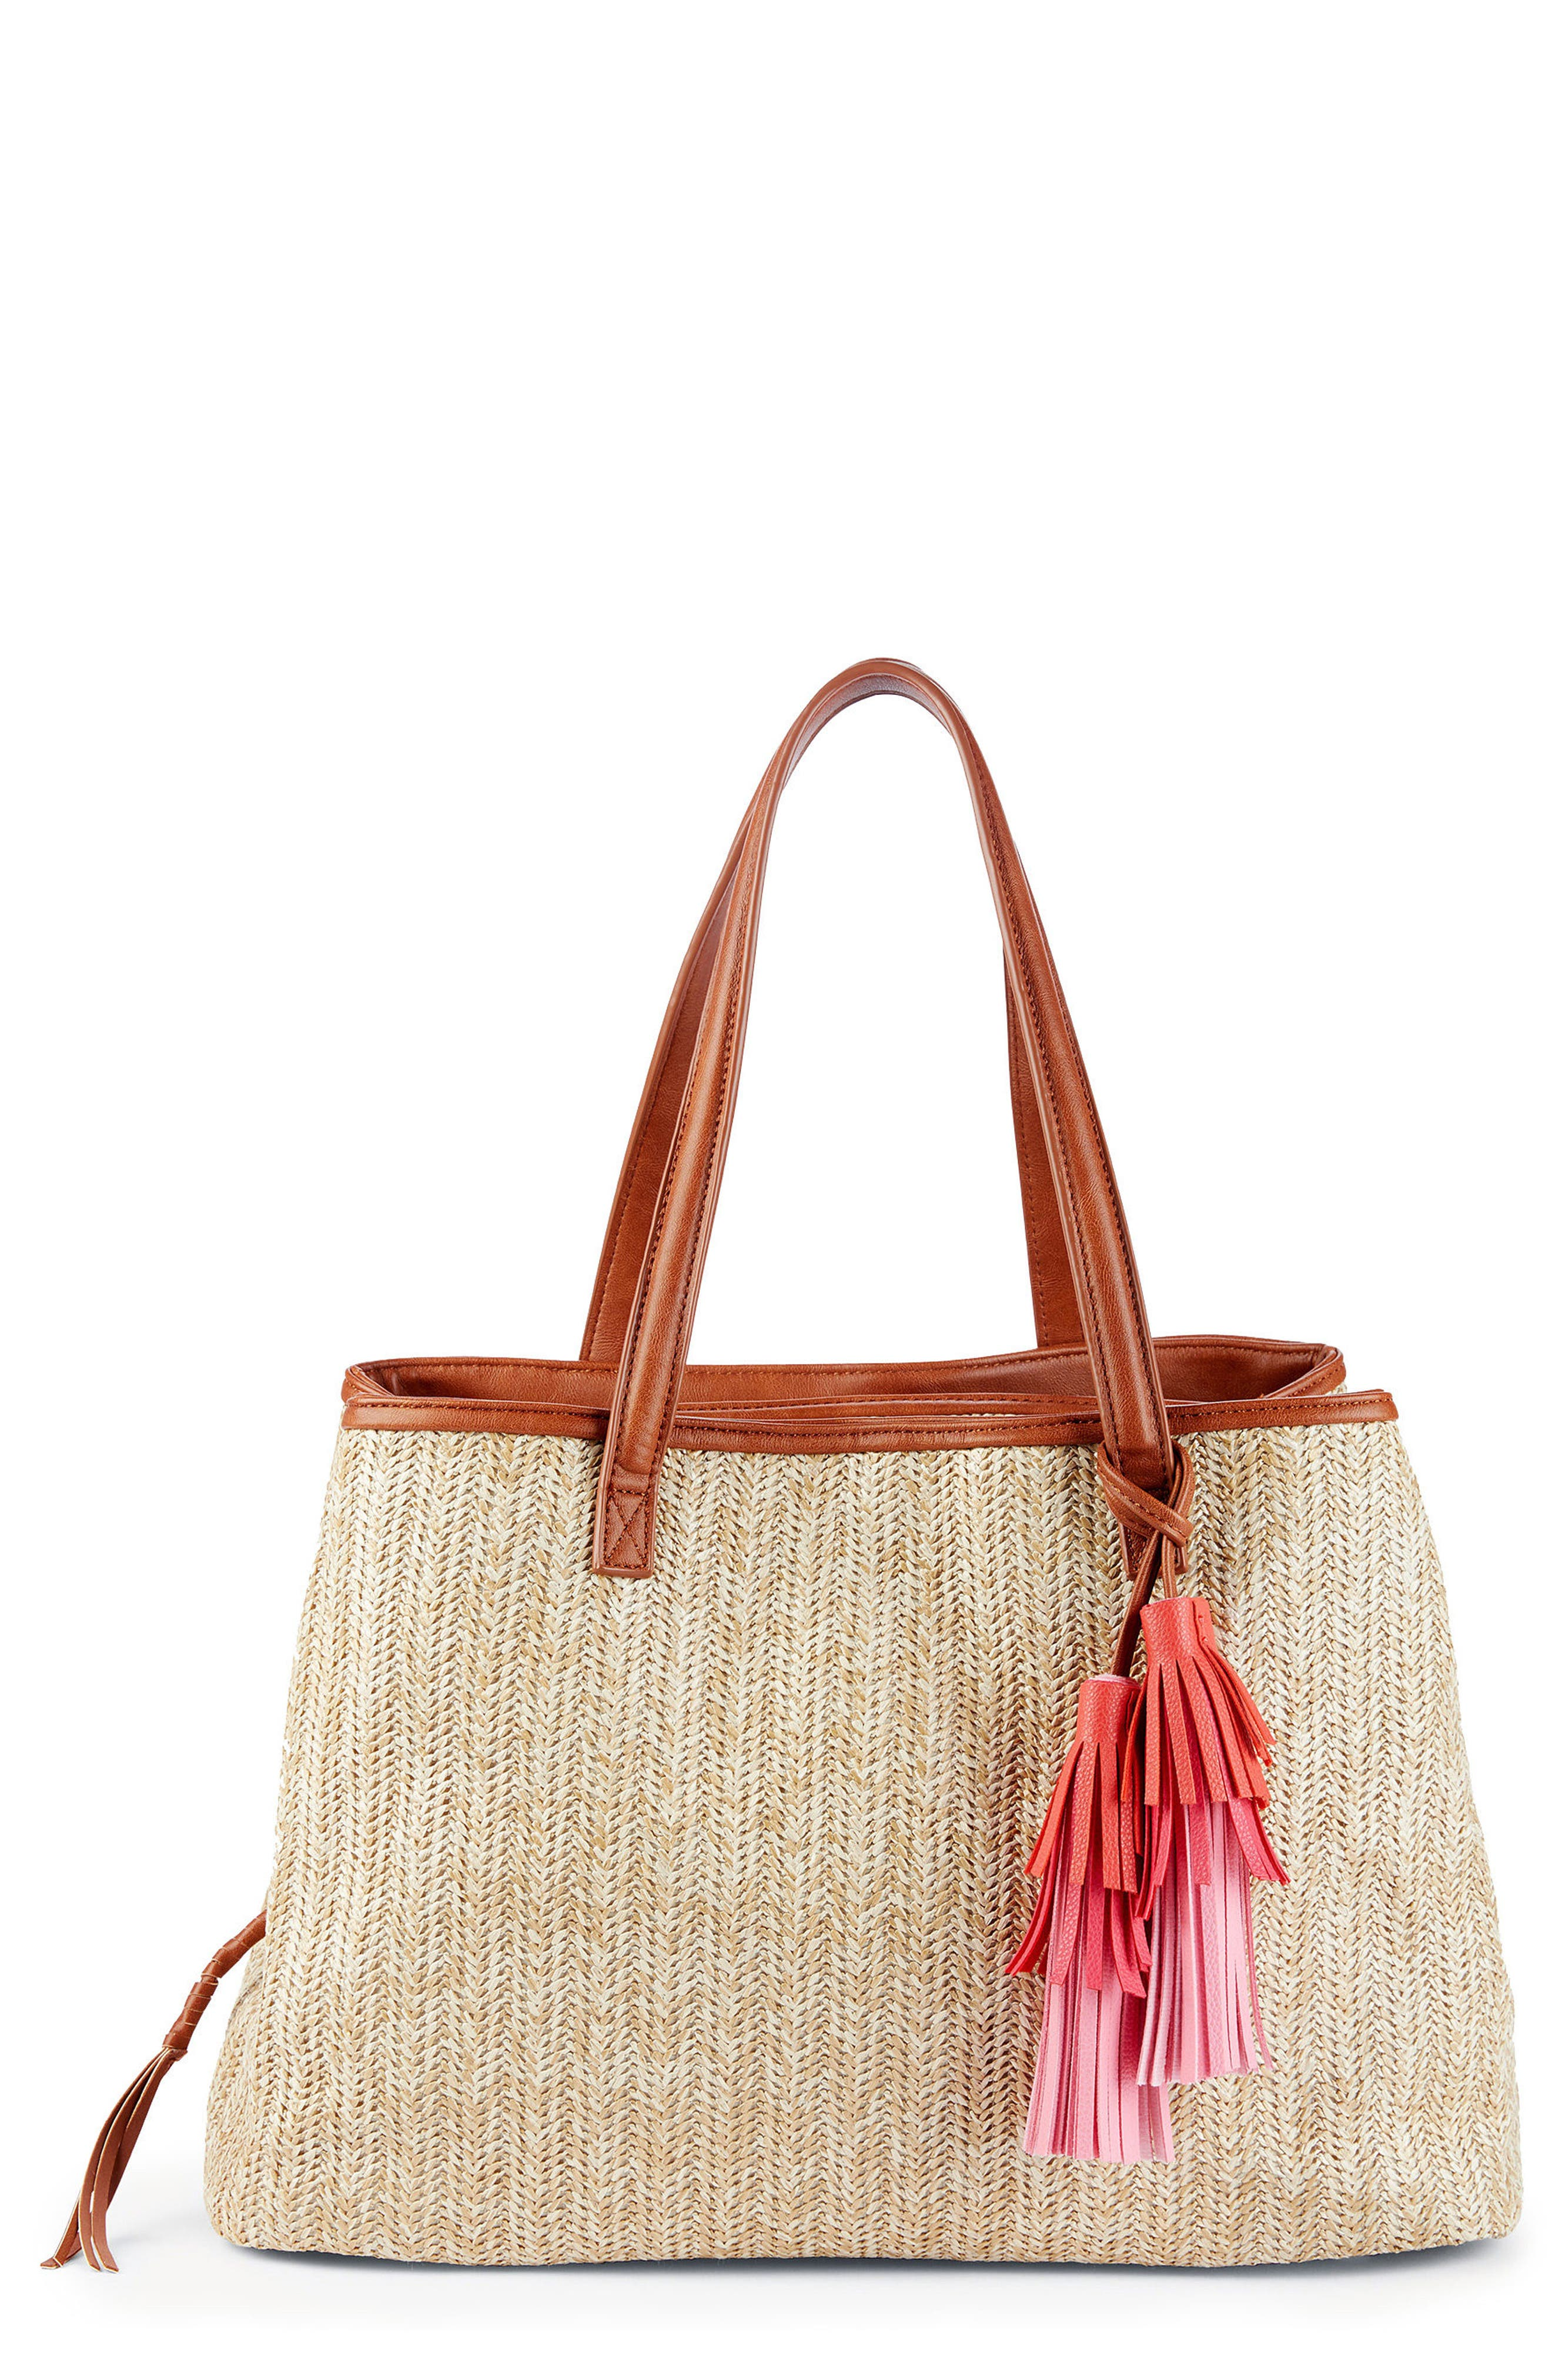 Pipper Faux Leather Tote,                             Main thumbnail 1, color,                             250